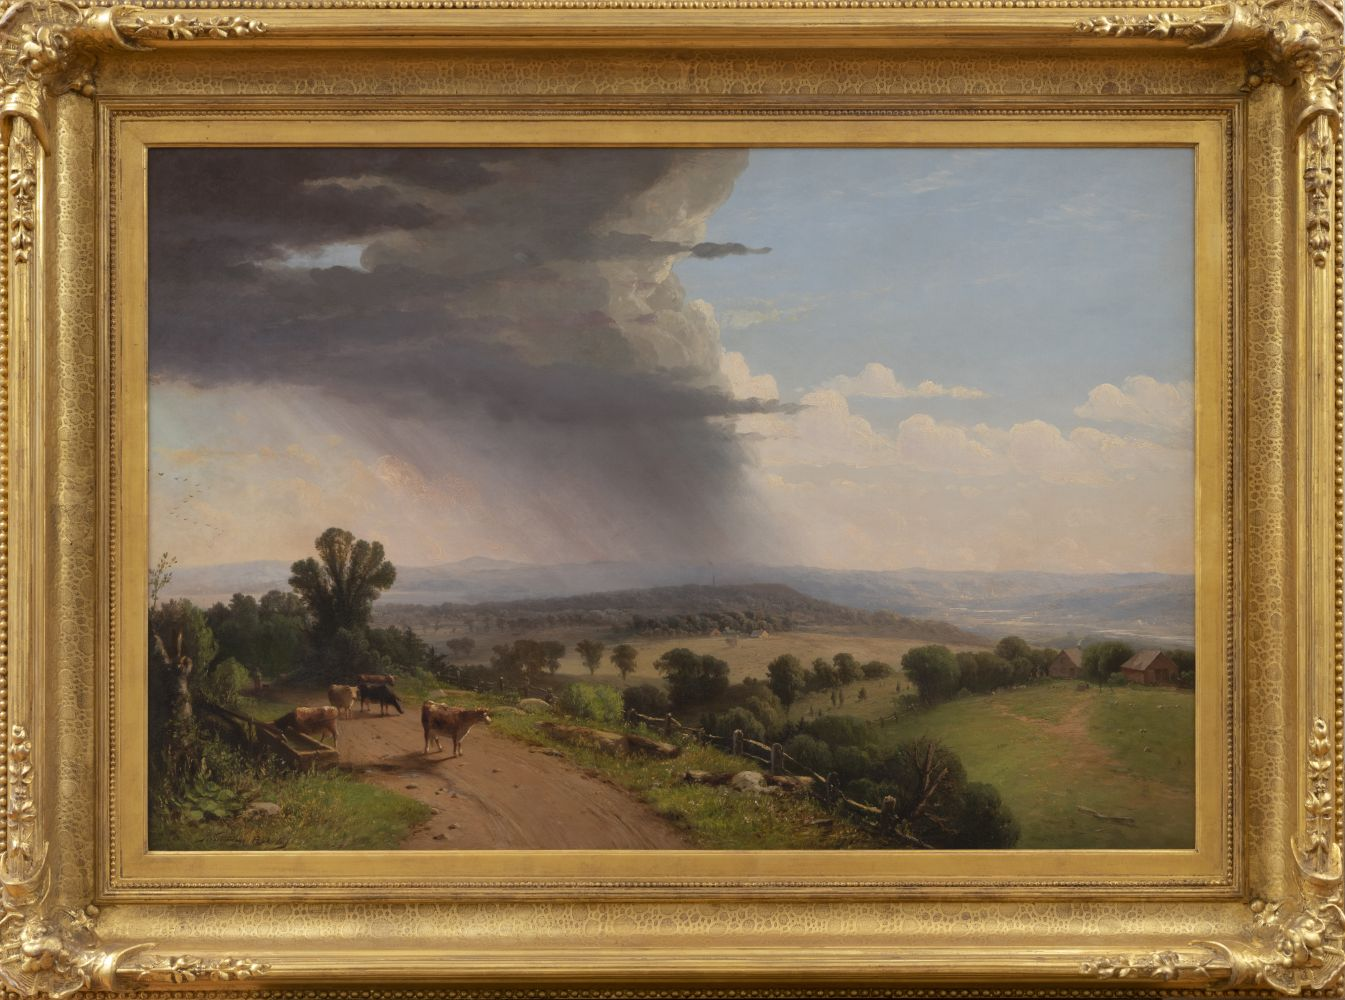 John Williamson (1826–1885), Passing Shower, Upper Valley of the Connecticut River, 1870, oil on canvas, 27 1/8 x 40 in., signed lower left: J. Williamson. 1870. N.Y Inscribed on verso: Passing Shower / Upper Valley of the Connecticut / J Williamson / N.Y. 1870 (framed)